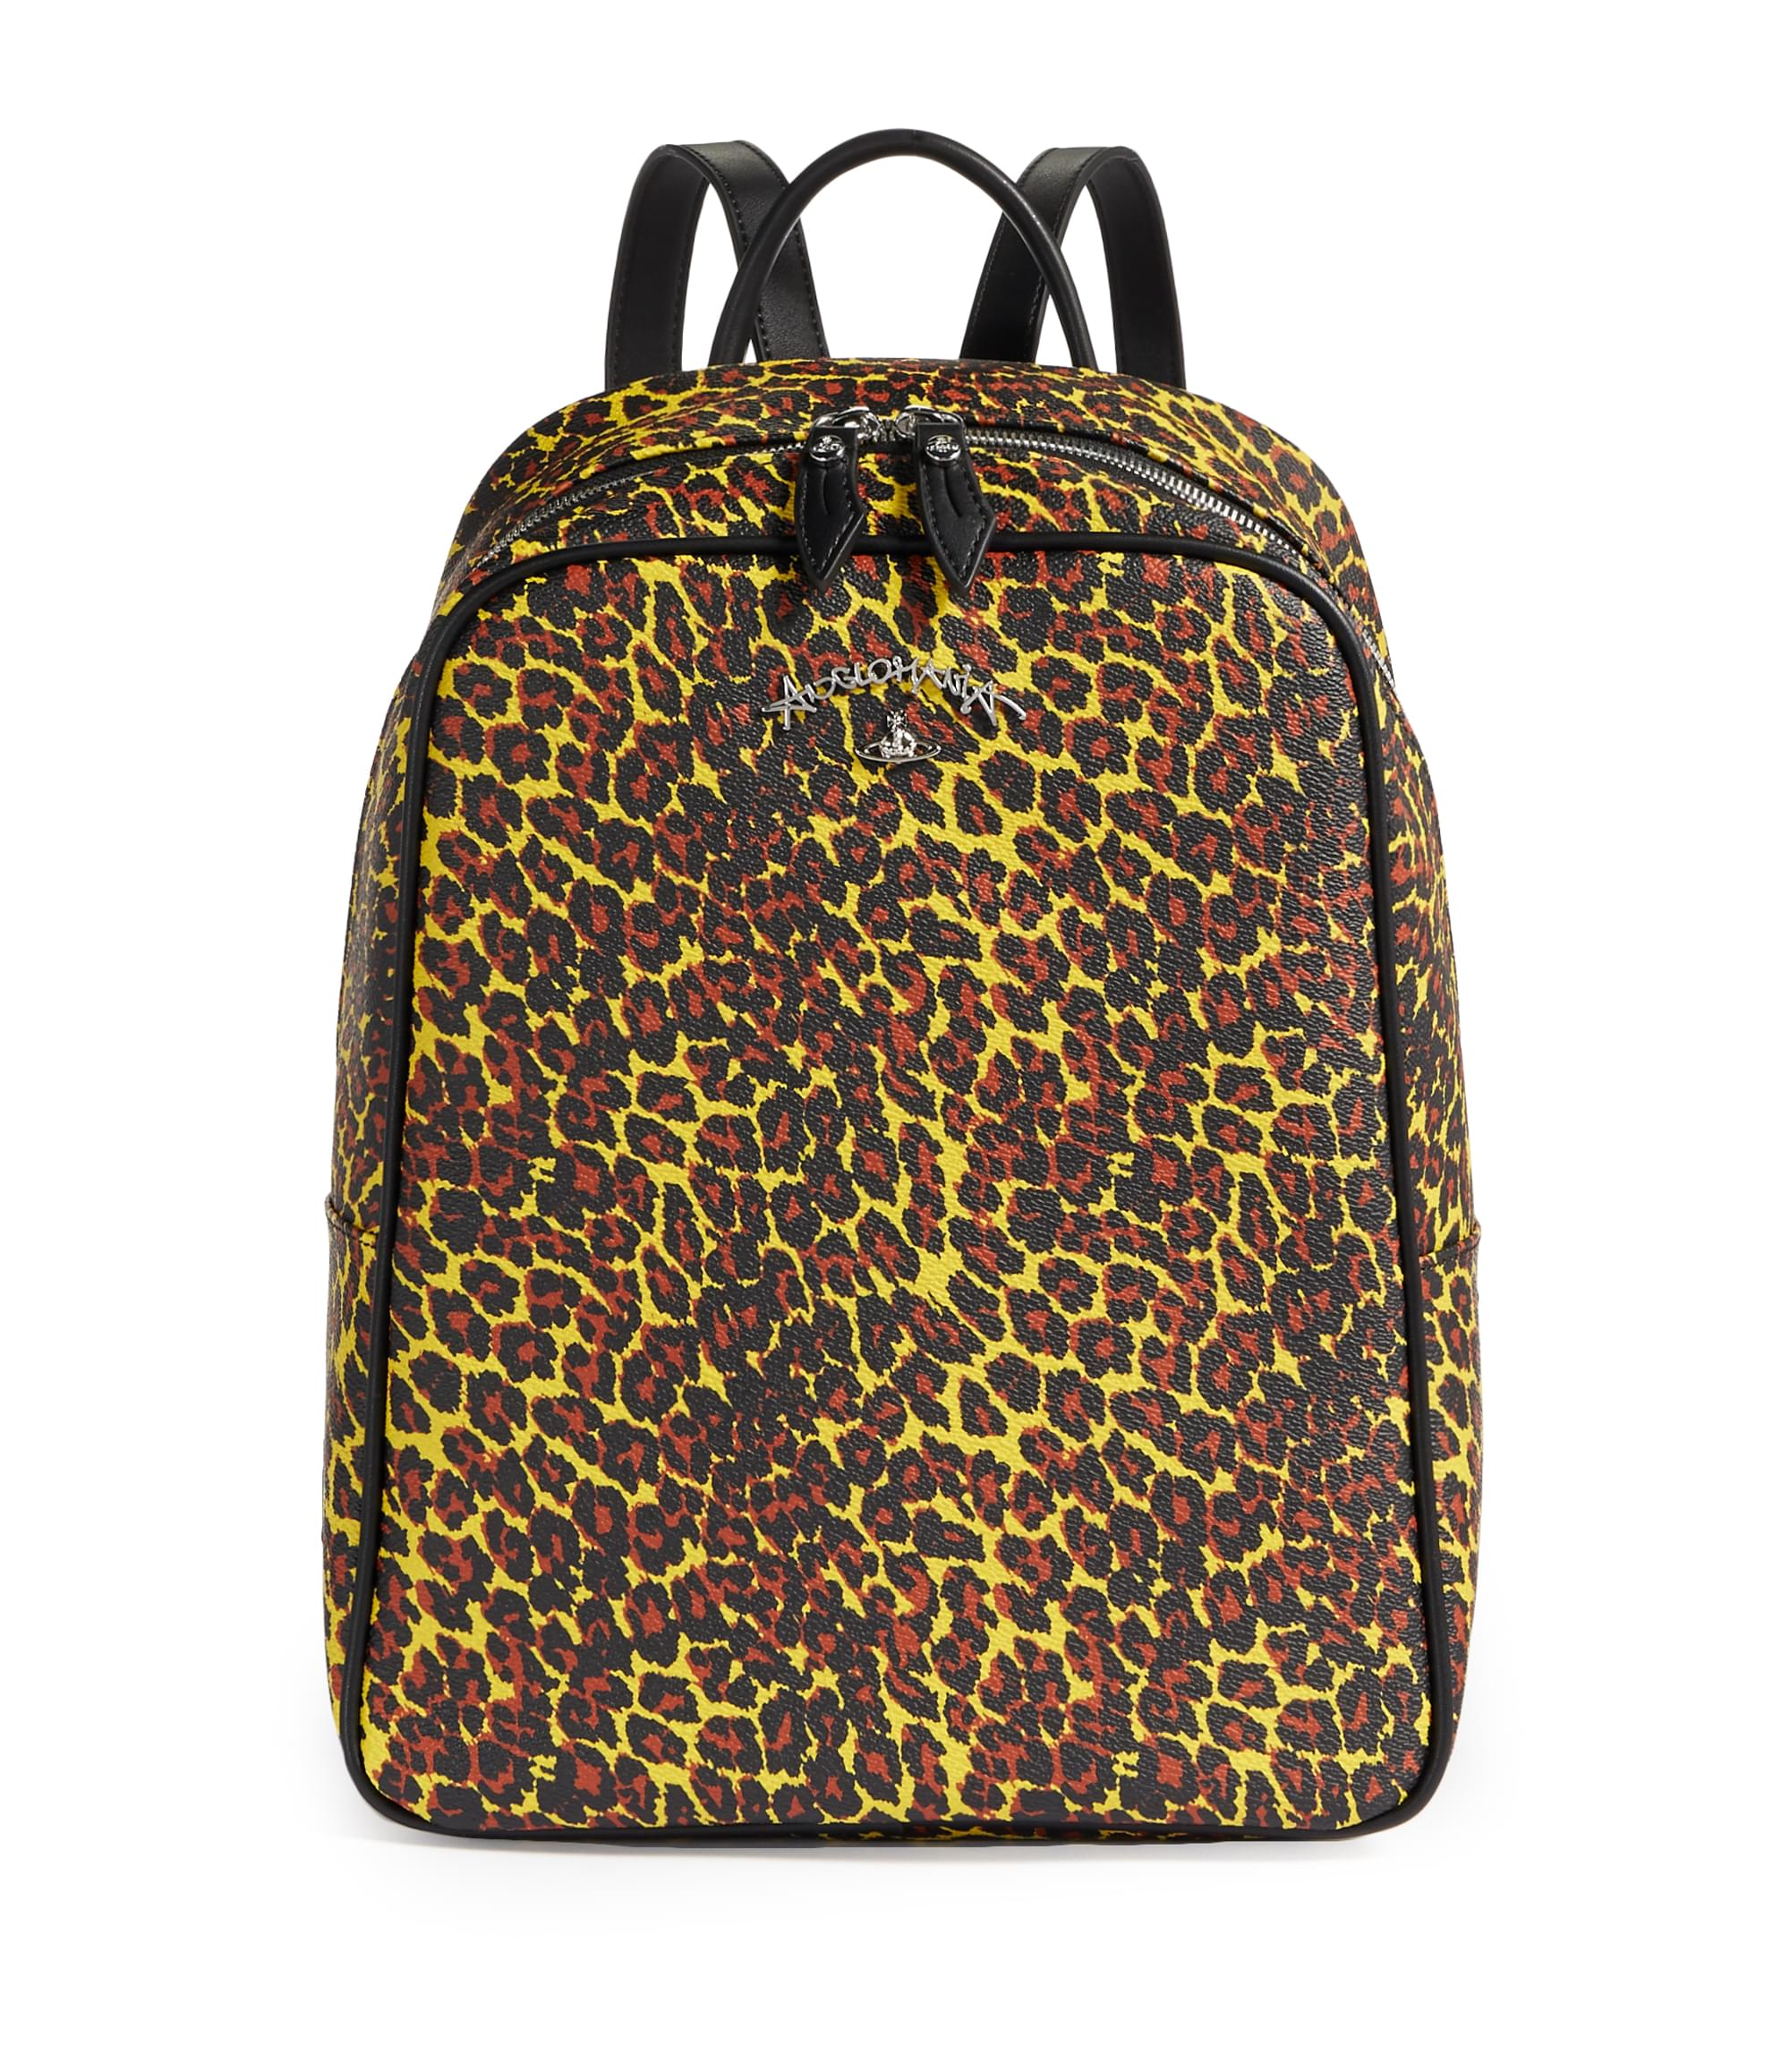 Vivienne Westwood Leopard Backpack 190038 Yellow